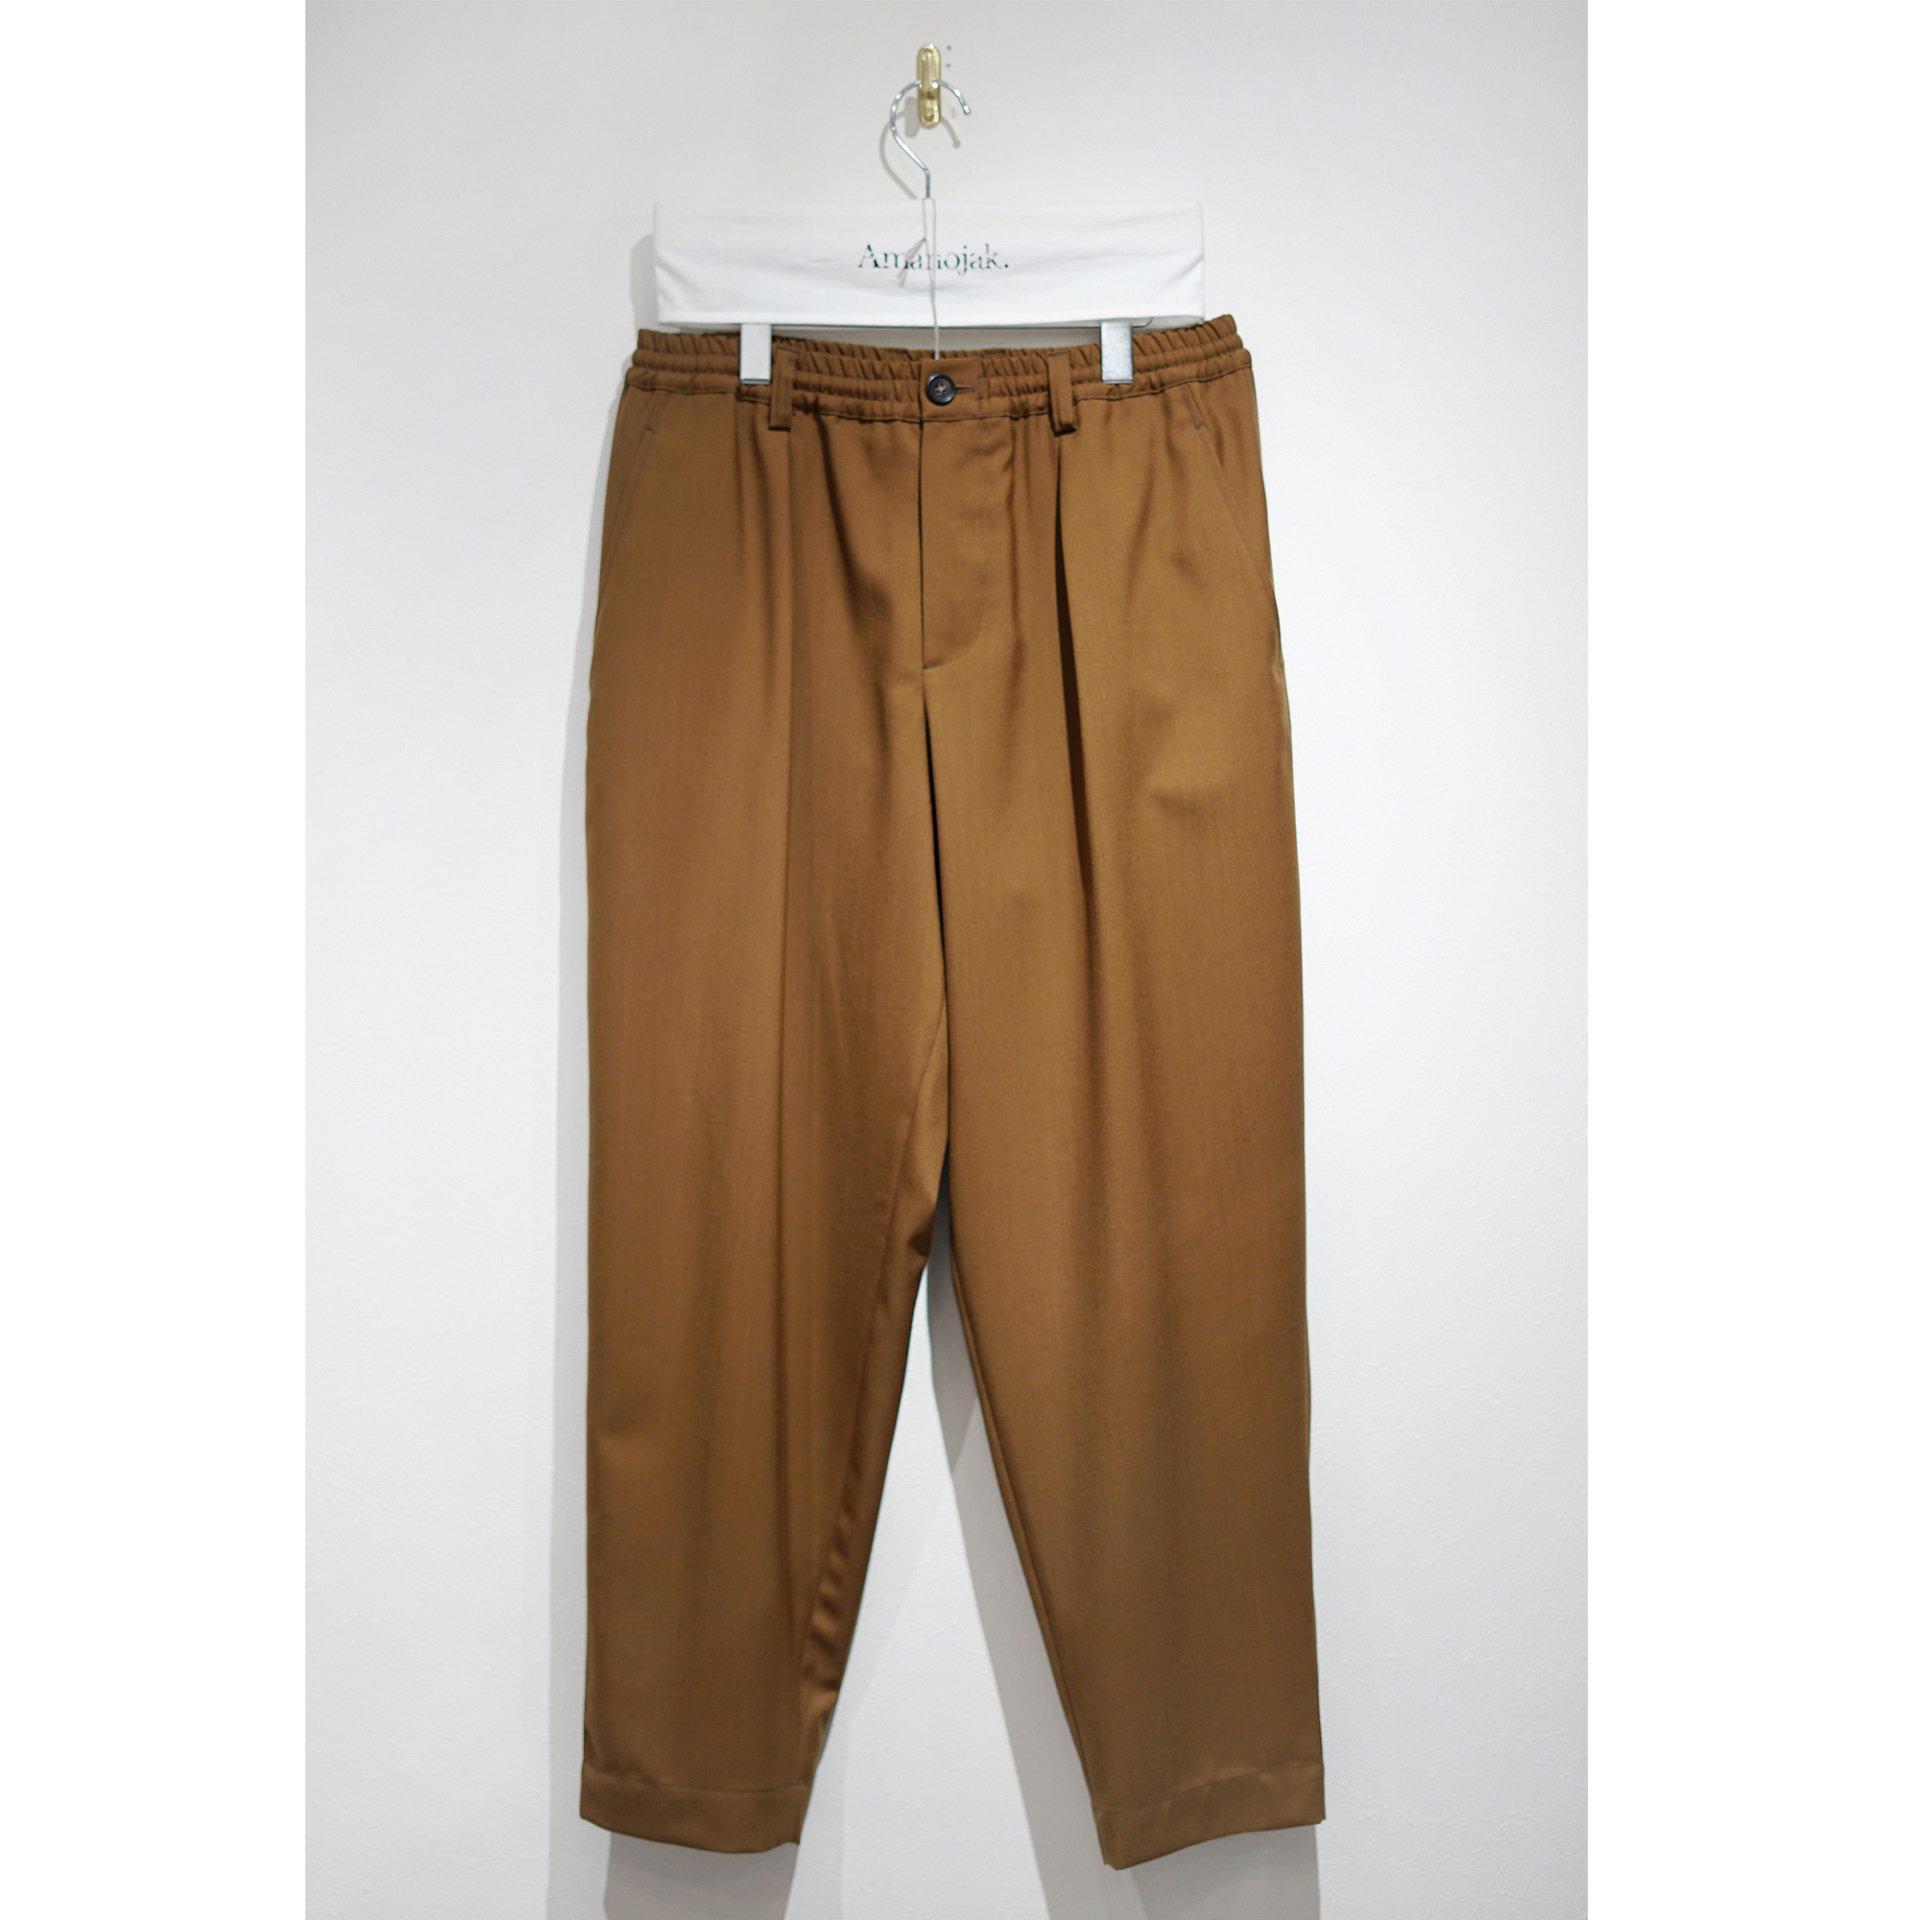 MARNI-EASY PANTS WOOSTED WOOL LAND<br>(在庫なし)